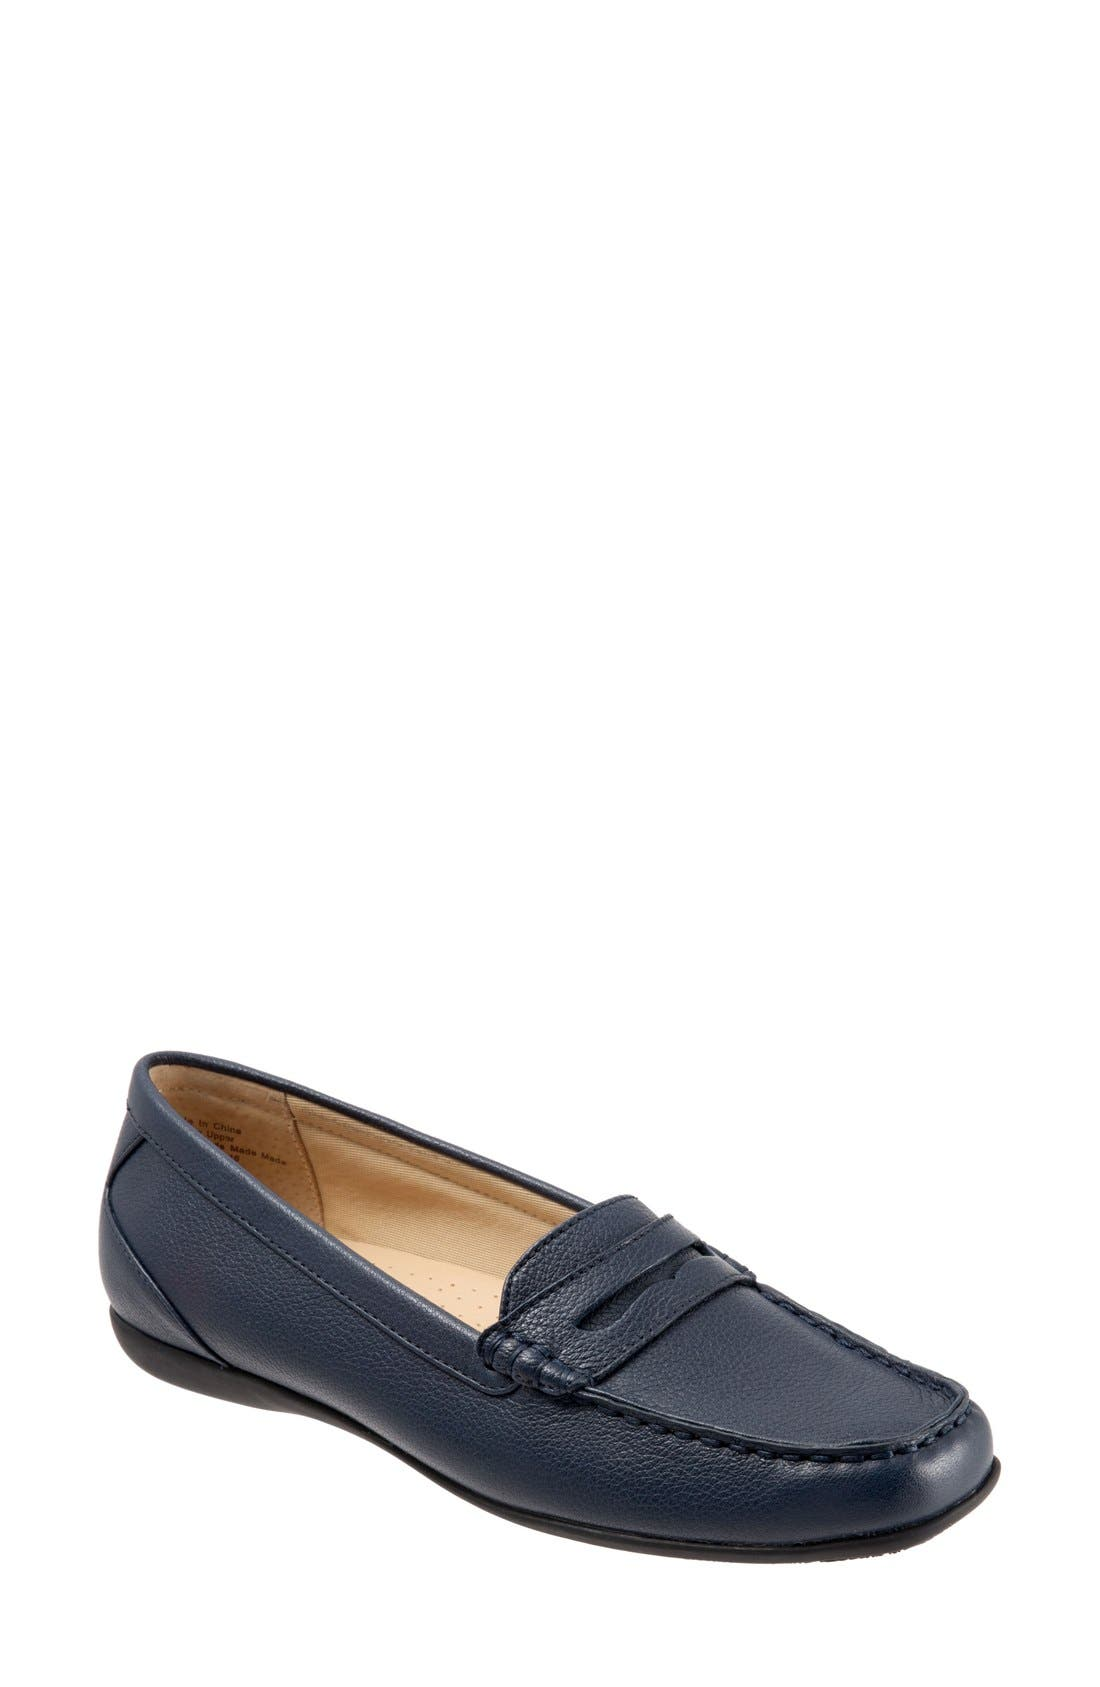 Alternate Image 1 Selected - Trotters 'Staci' Penny Loafer (Women)